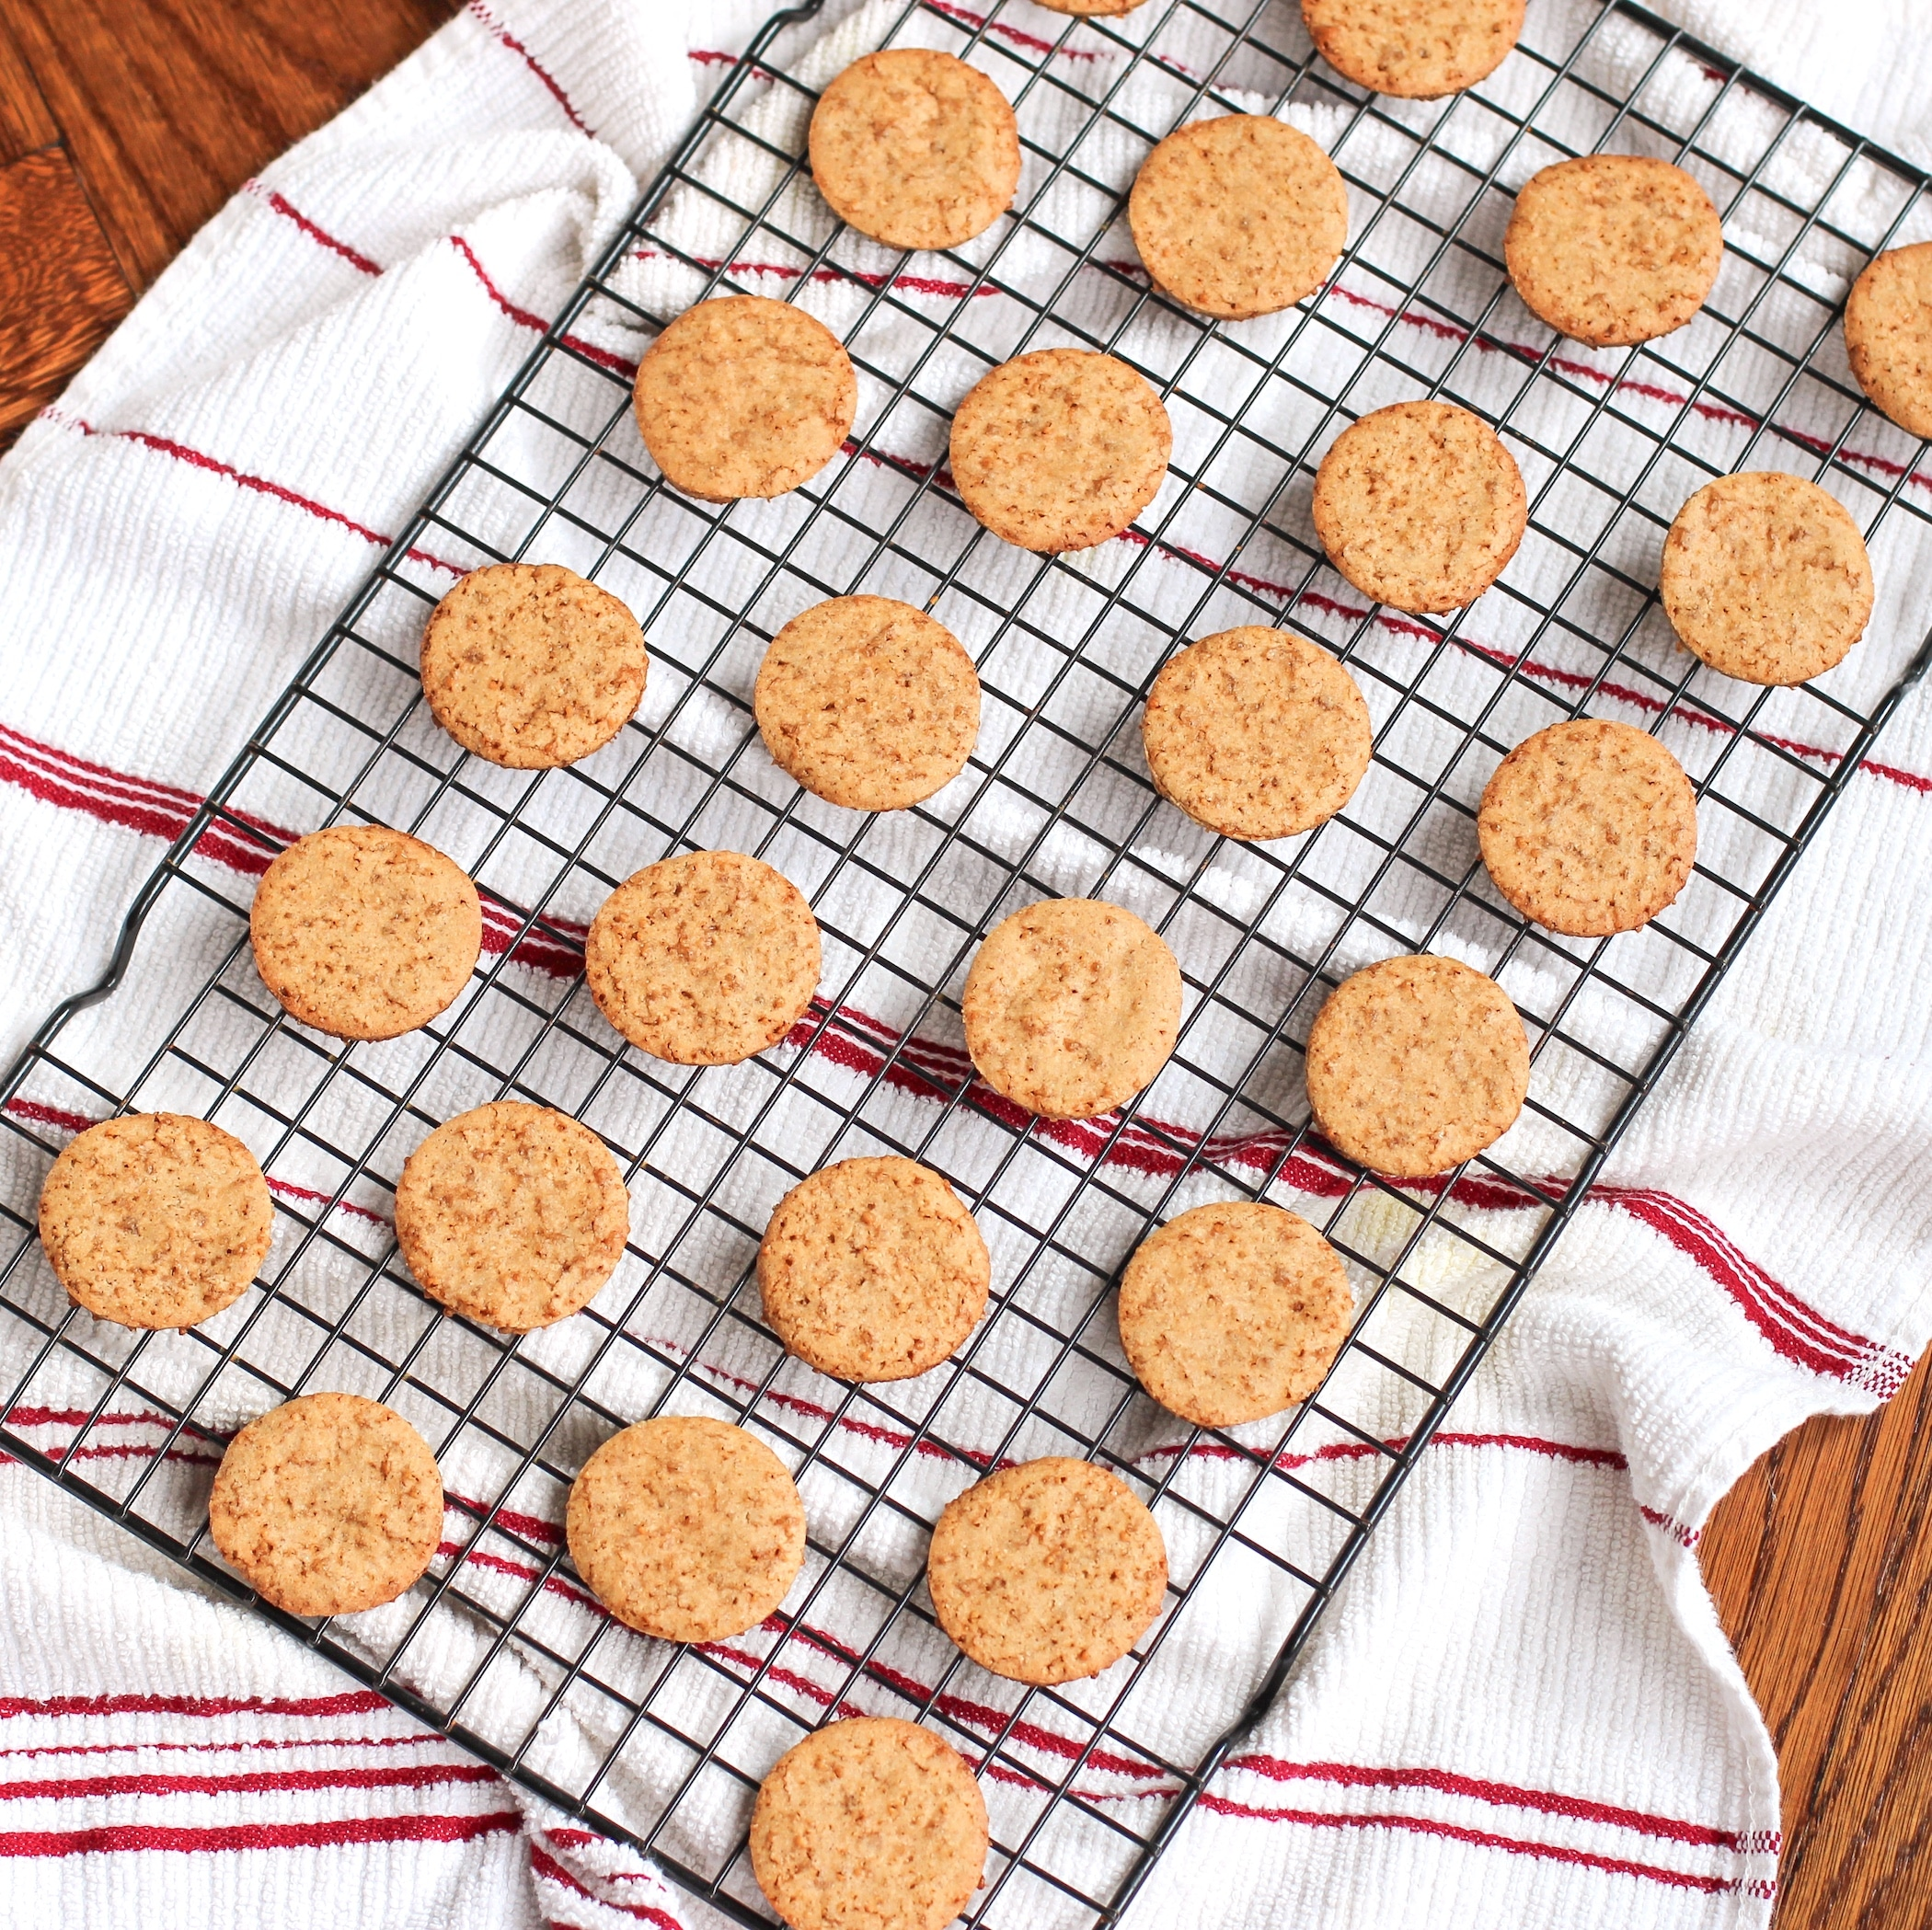 These Healthy Homemade Graham Crackers are crunchy, sweet, and addicting...  you'd never know they're low fat, low sugar, gluten free, and vegan too!